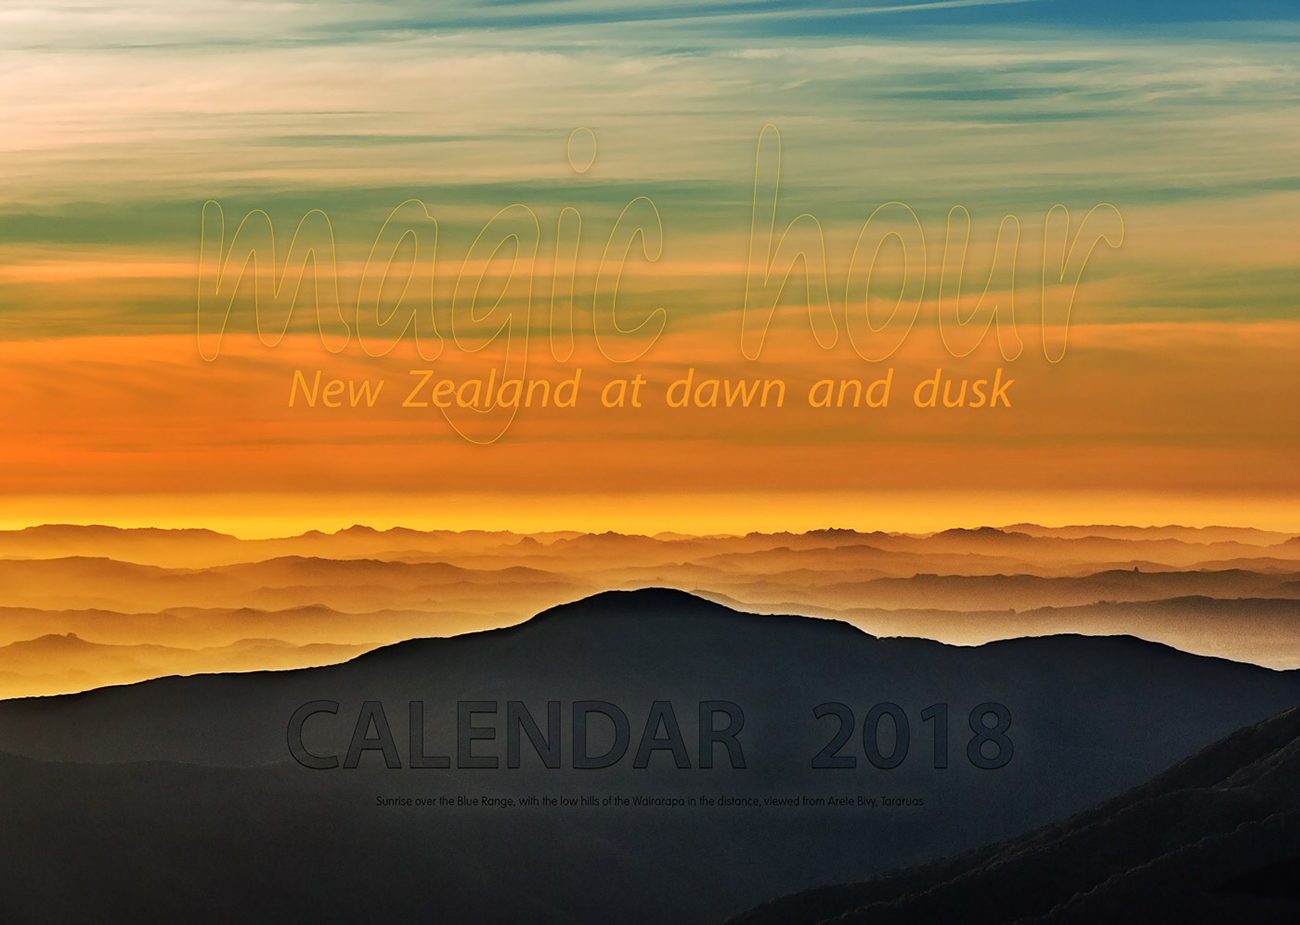 Generously sized beautiful New Zealand sunrise and sunset image 2018 calendar - occasionalclimber.co.nz